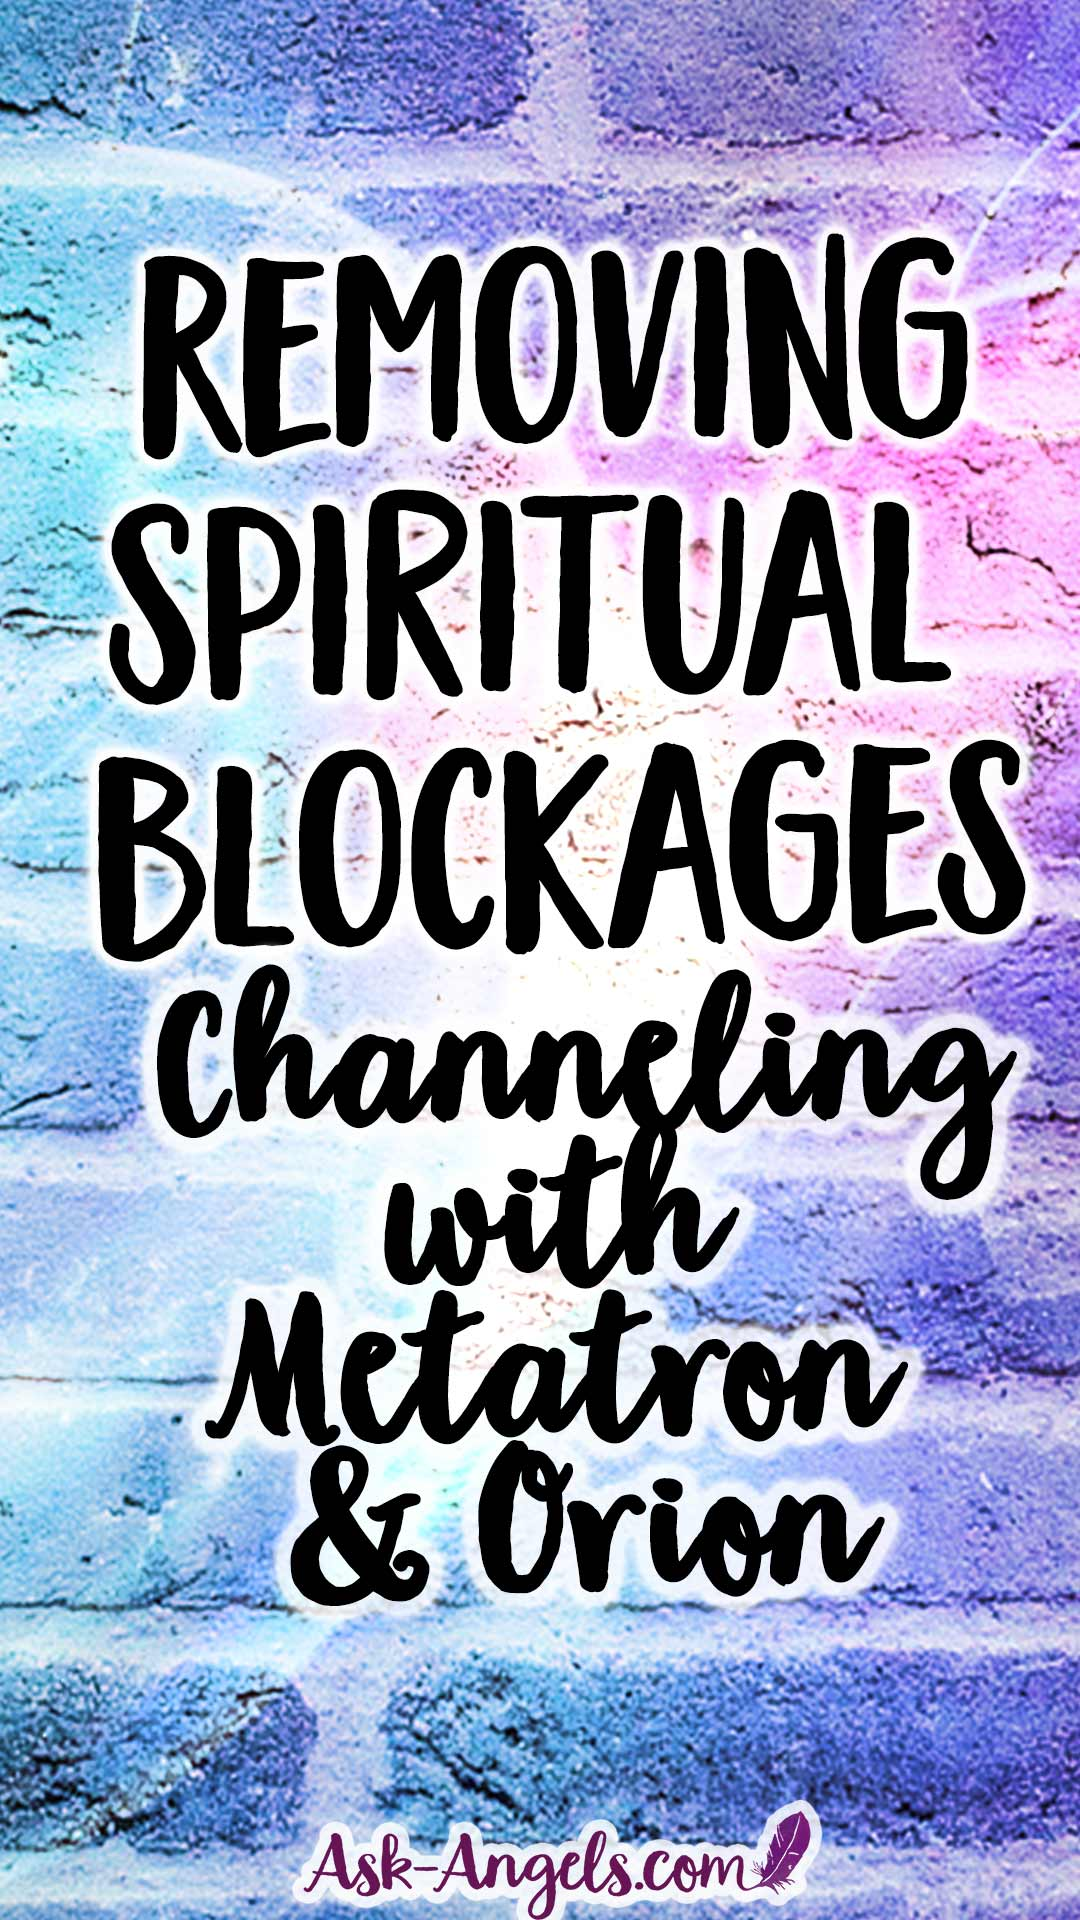 Removing Spiritual Blockages